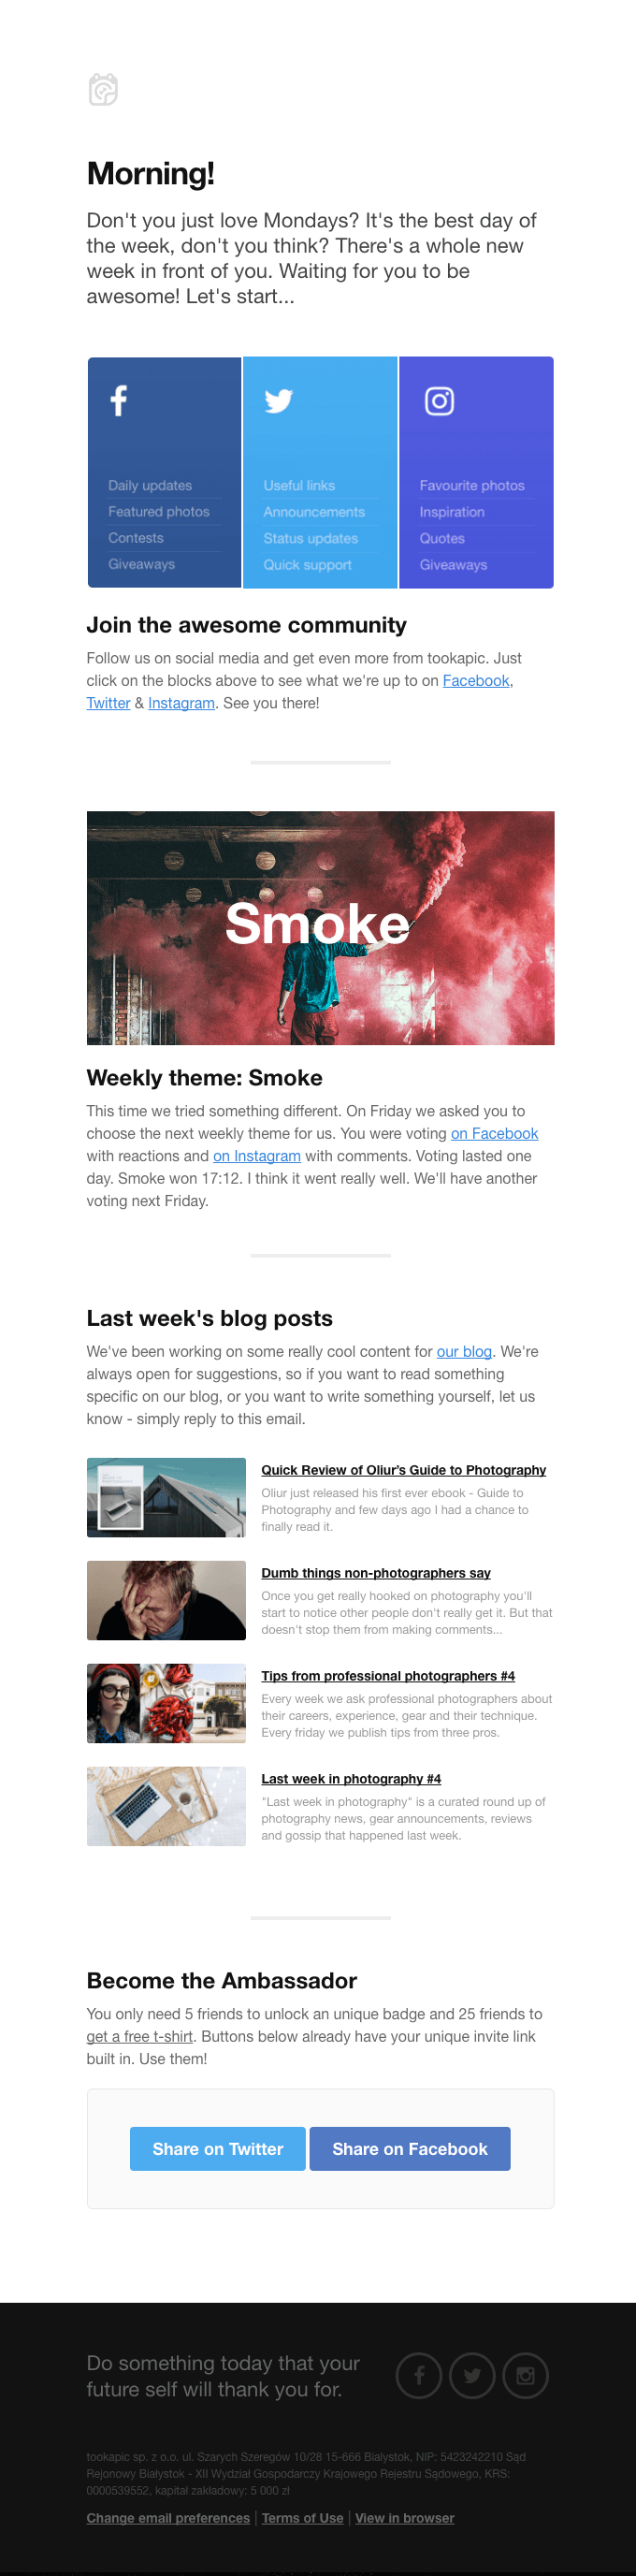 Tookapic's newsletter below provides a lot of updates such as previous posts, current theme, and social links all in one page.